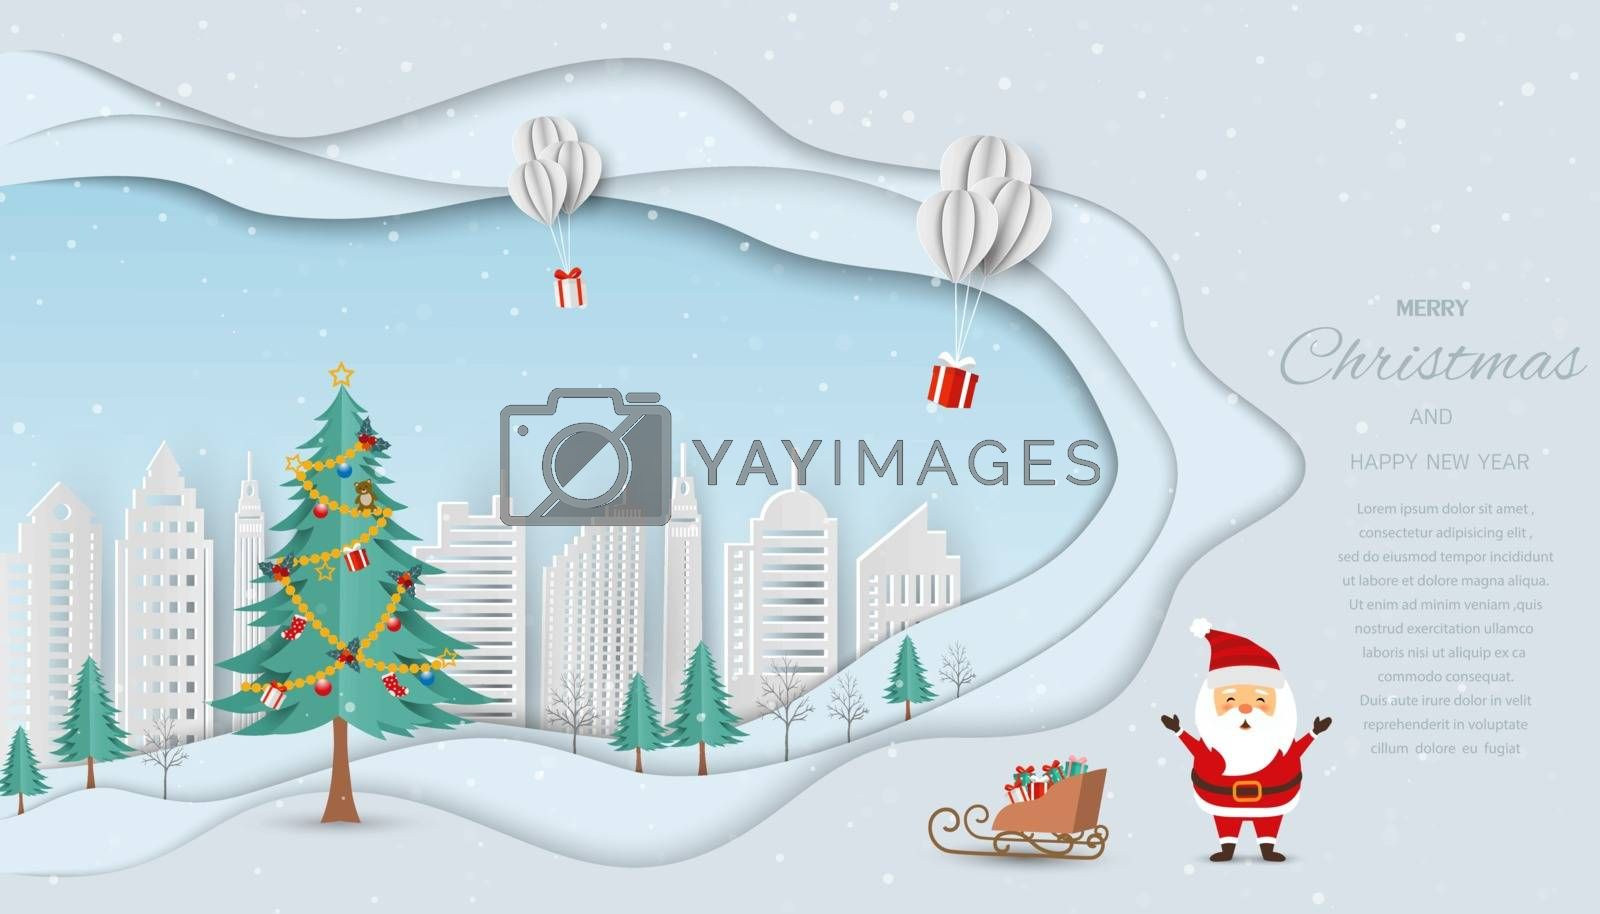 Merry Christmas and Happy new year greeting card,Santa Claus send gift boxes by balloons to white city,vector illustration